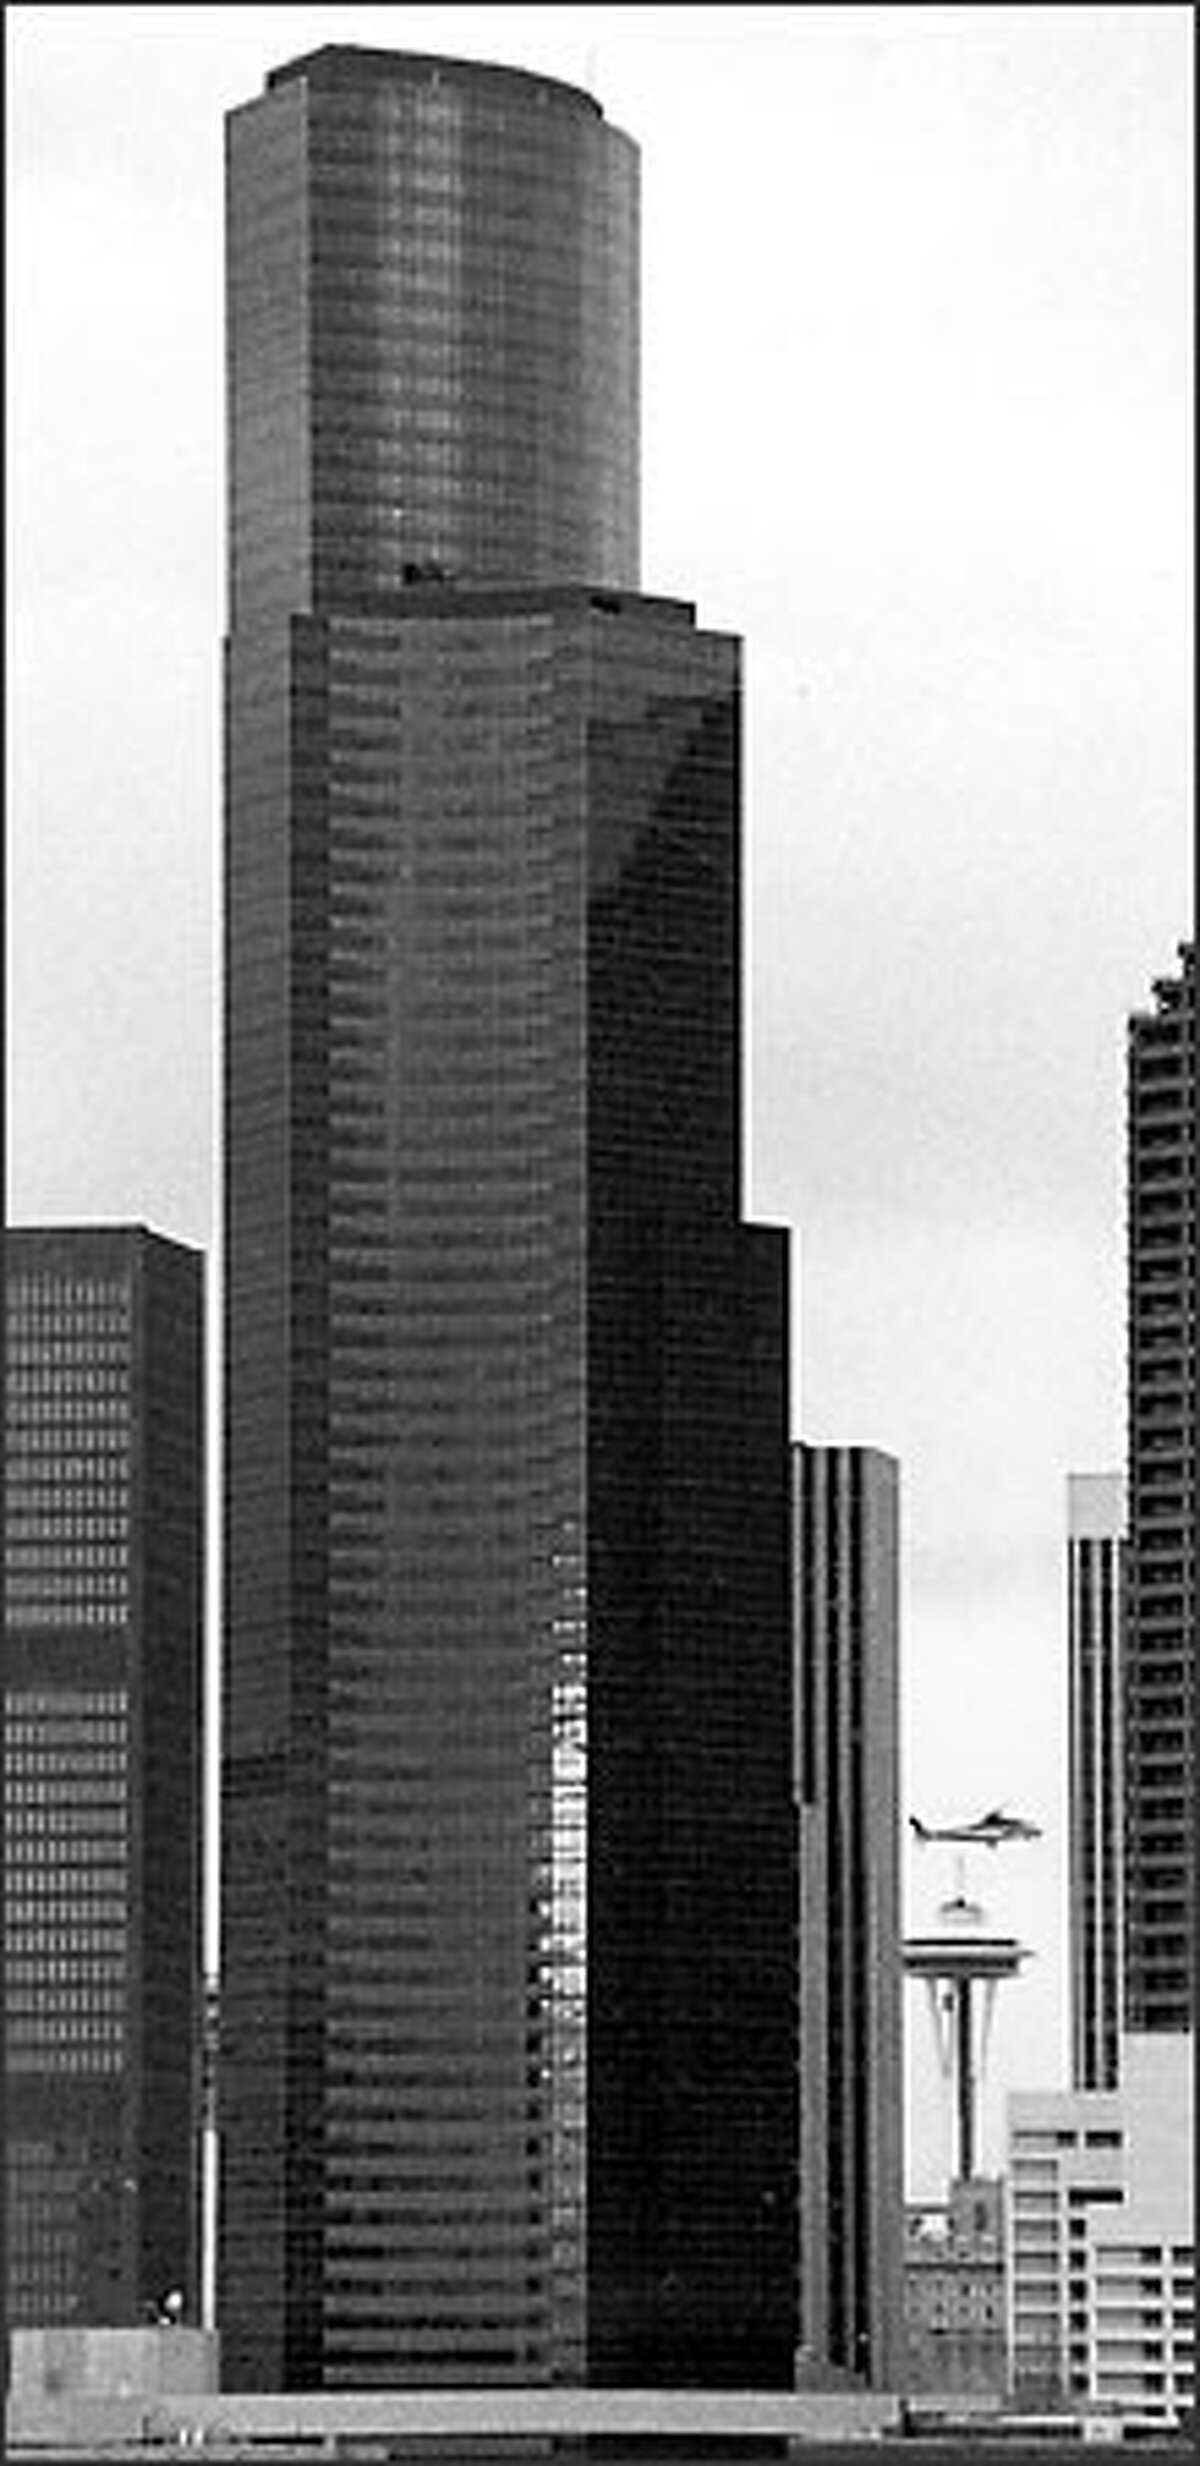 The Lindsey-designed Columbia Seafirst Center, now known as the Bank of America Tower, was a monolith when it opened in 1985.